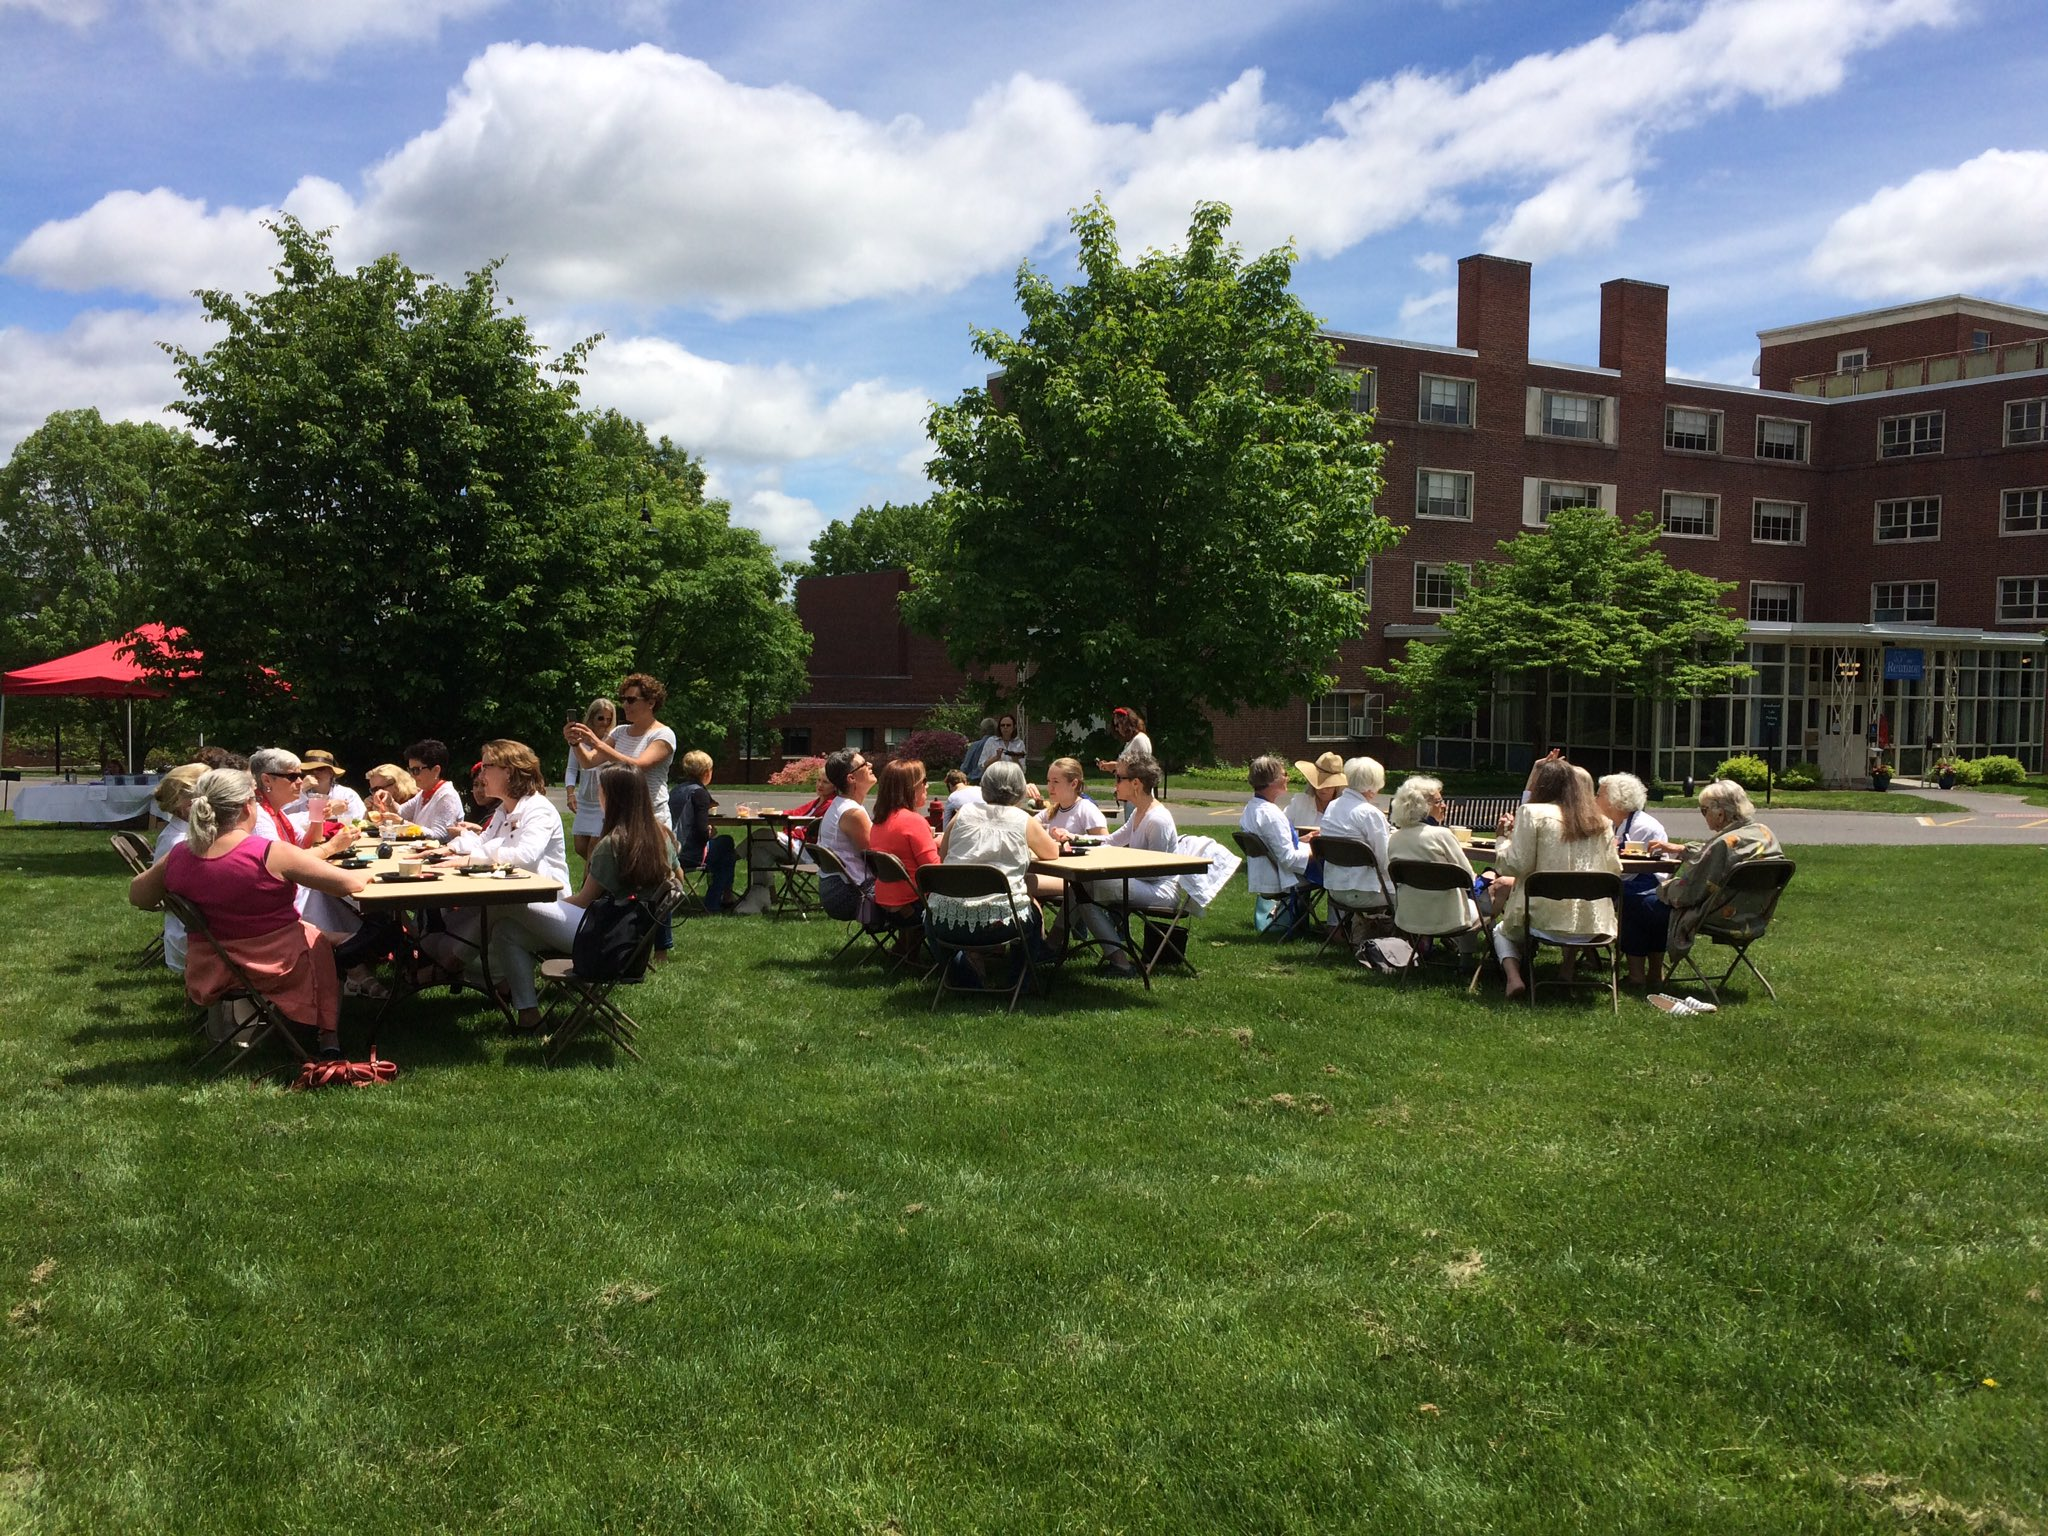 Classes having lunch outside in the Mary Woolley Green at #MHCReunion https://t.co/etTtAfTzbO